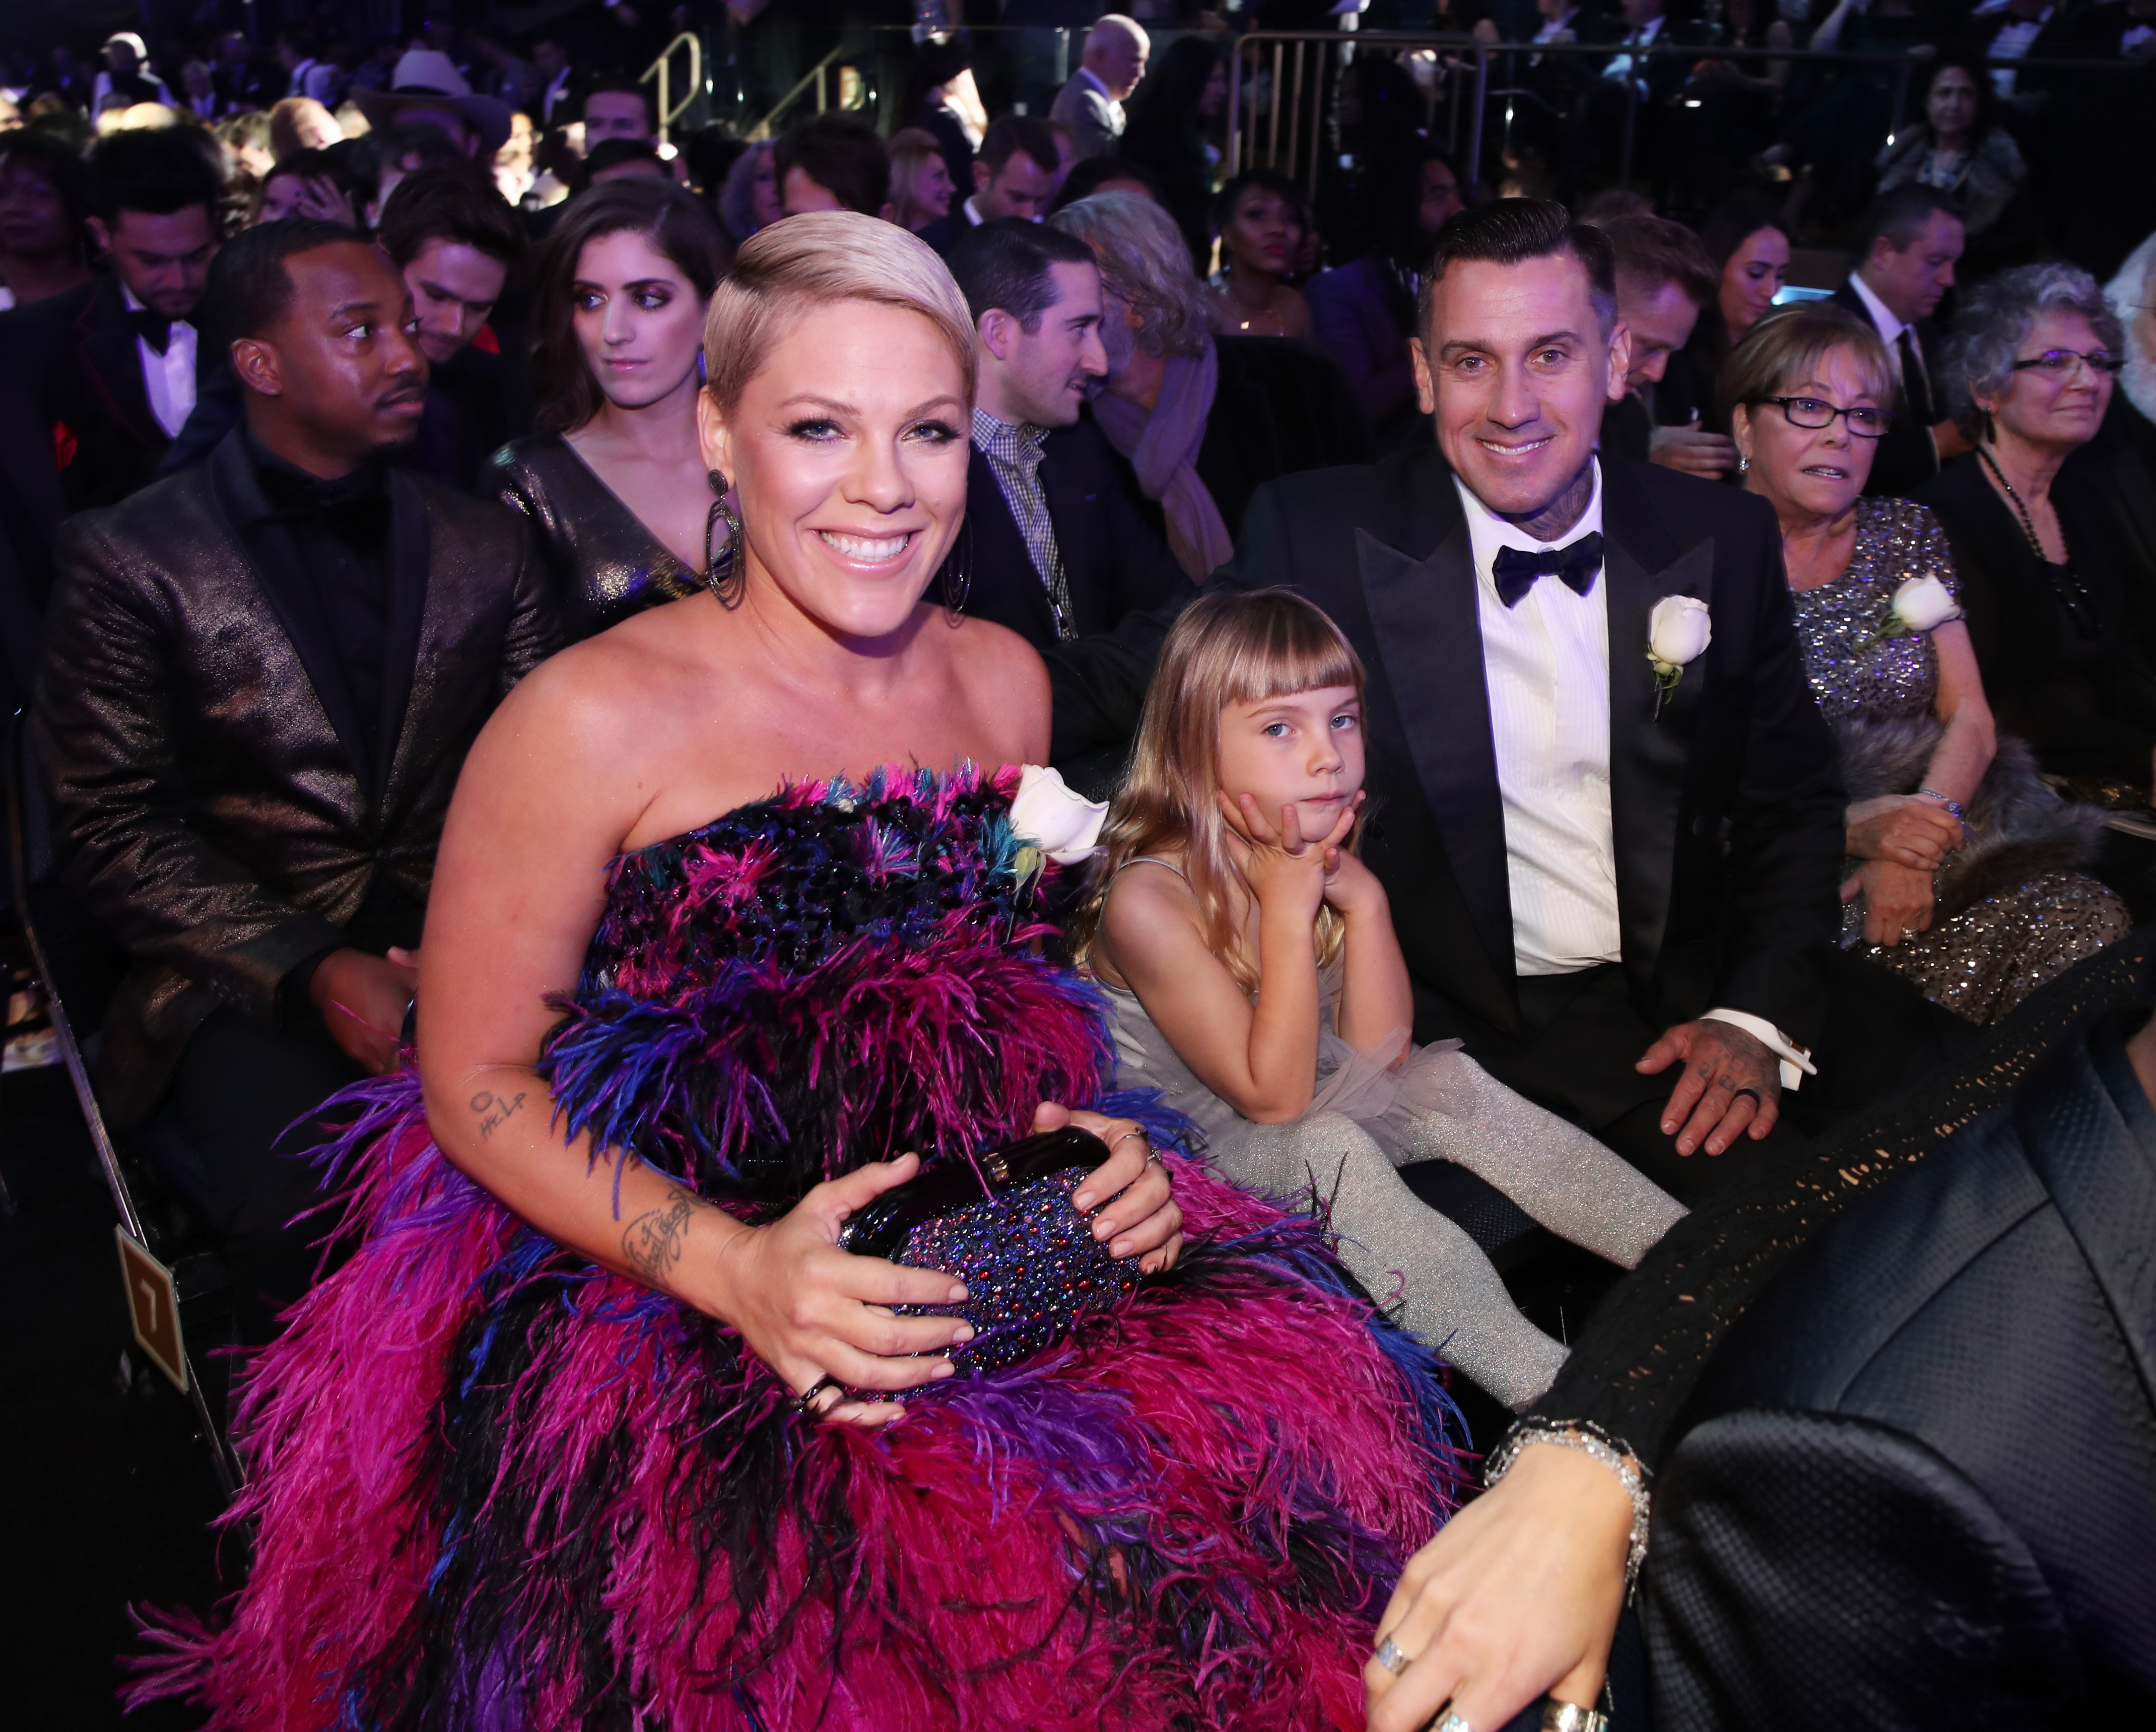 (L-R) Recording artist Pink, Willow Sage Hart, Carey Hart, and Judith Moore attend the 60th Annual GRAMMY Awards at Madison Square Garden on January 28, 2018, in New York City. (Getty Images)